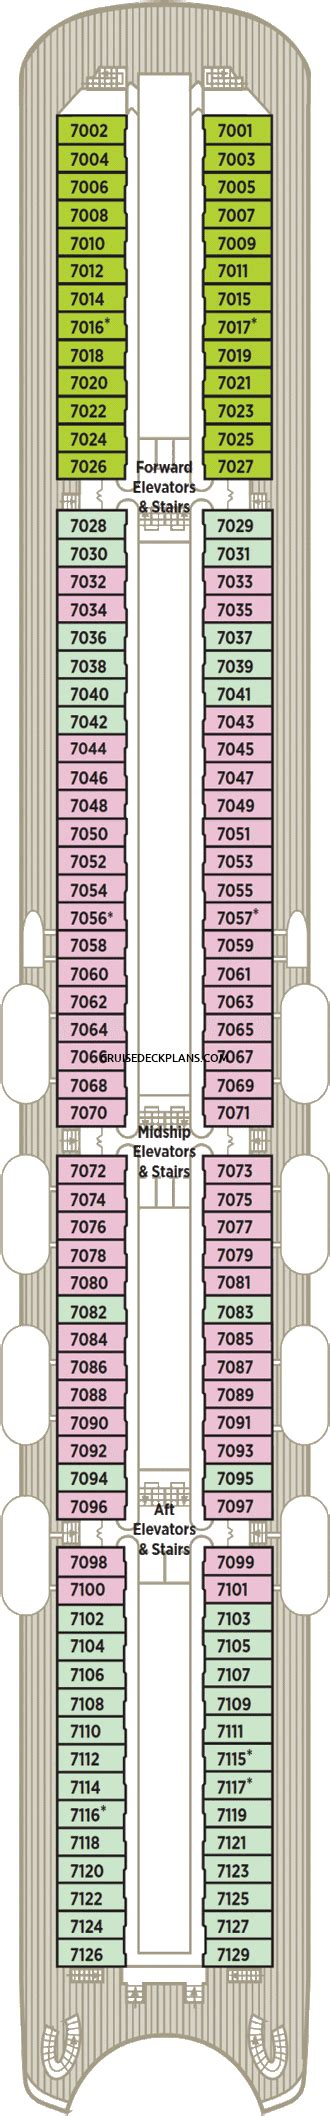 Crystal Symphony Deck Plans - Cabin Diagrams - Pictures